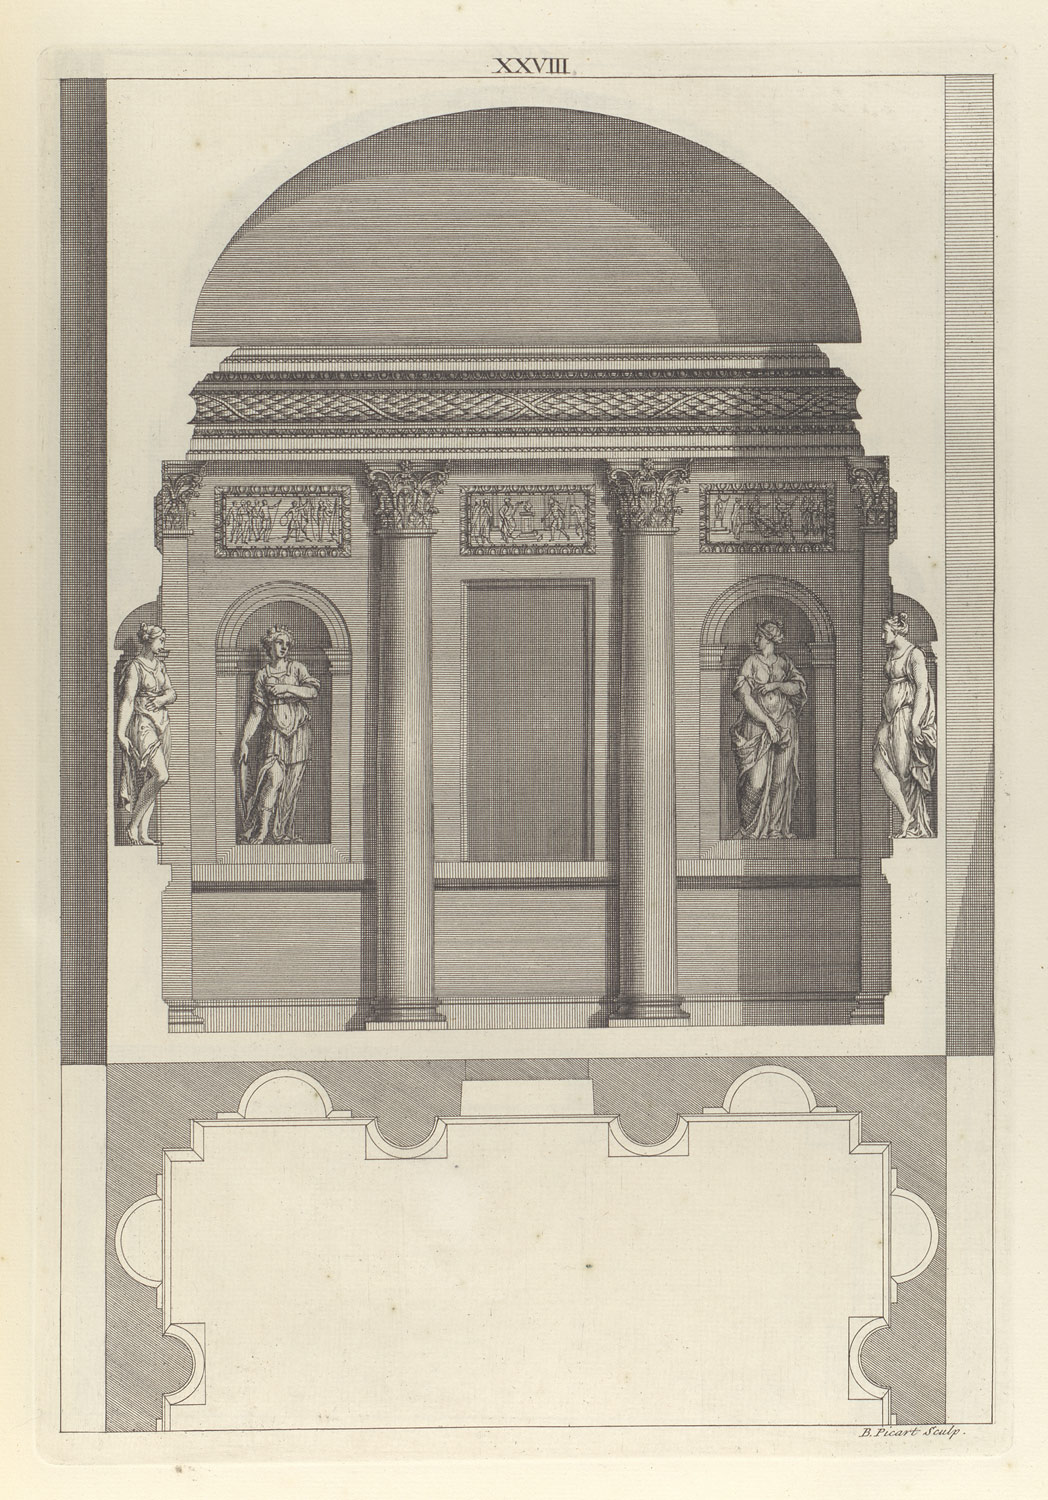 Design for a Corinthian Hall, in The Architecture of A. Palladio in Four Books containing a Short Treatise on the Five Orders (LArchitecture de A. Palladio en quatre livres... / Il quattro libri dellarchitettura) (Volume 1, book 2, plate 28)